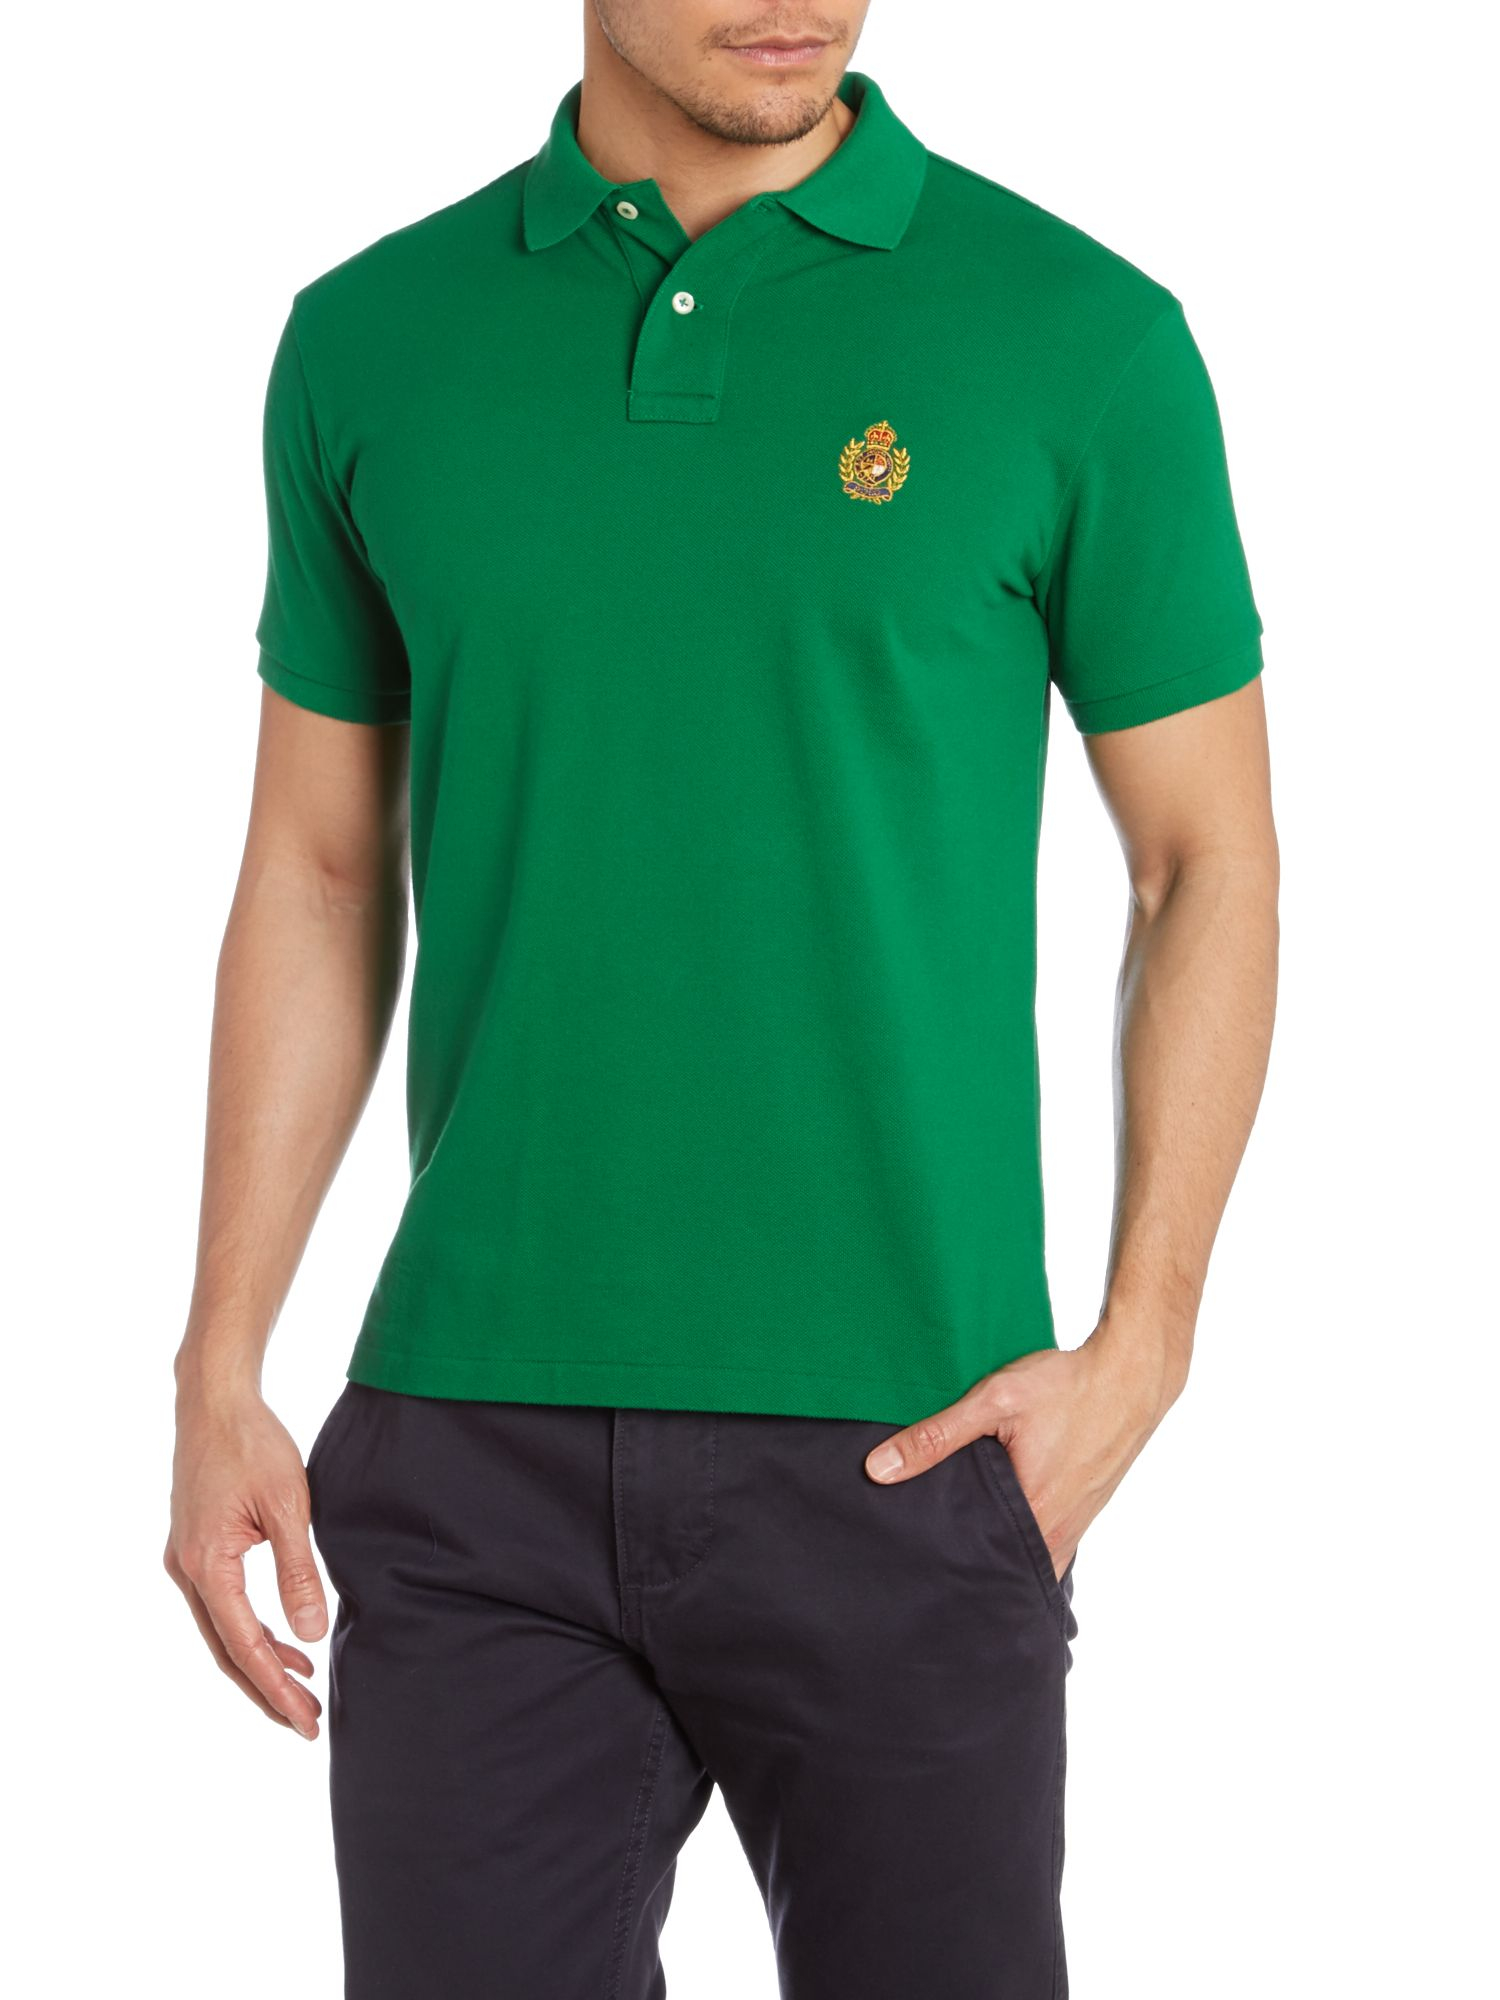 Polo ralph lauren custom fit crest pocket polo shirt in for Two pocket polo shirt